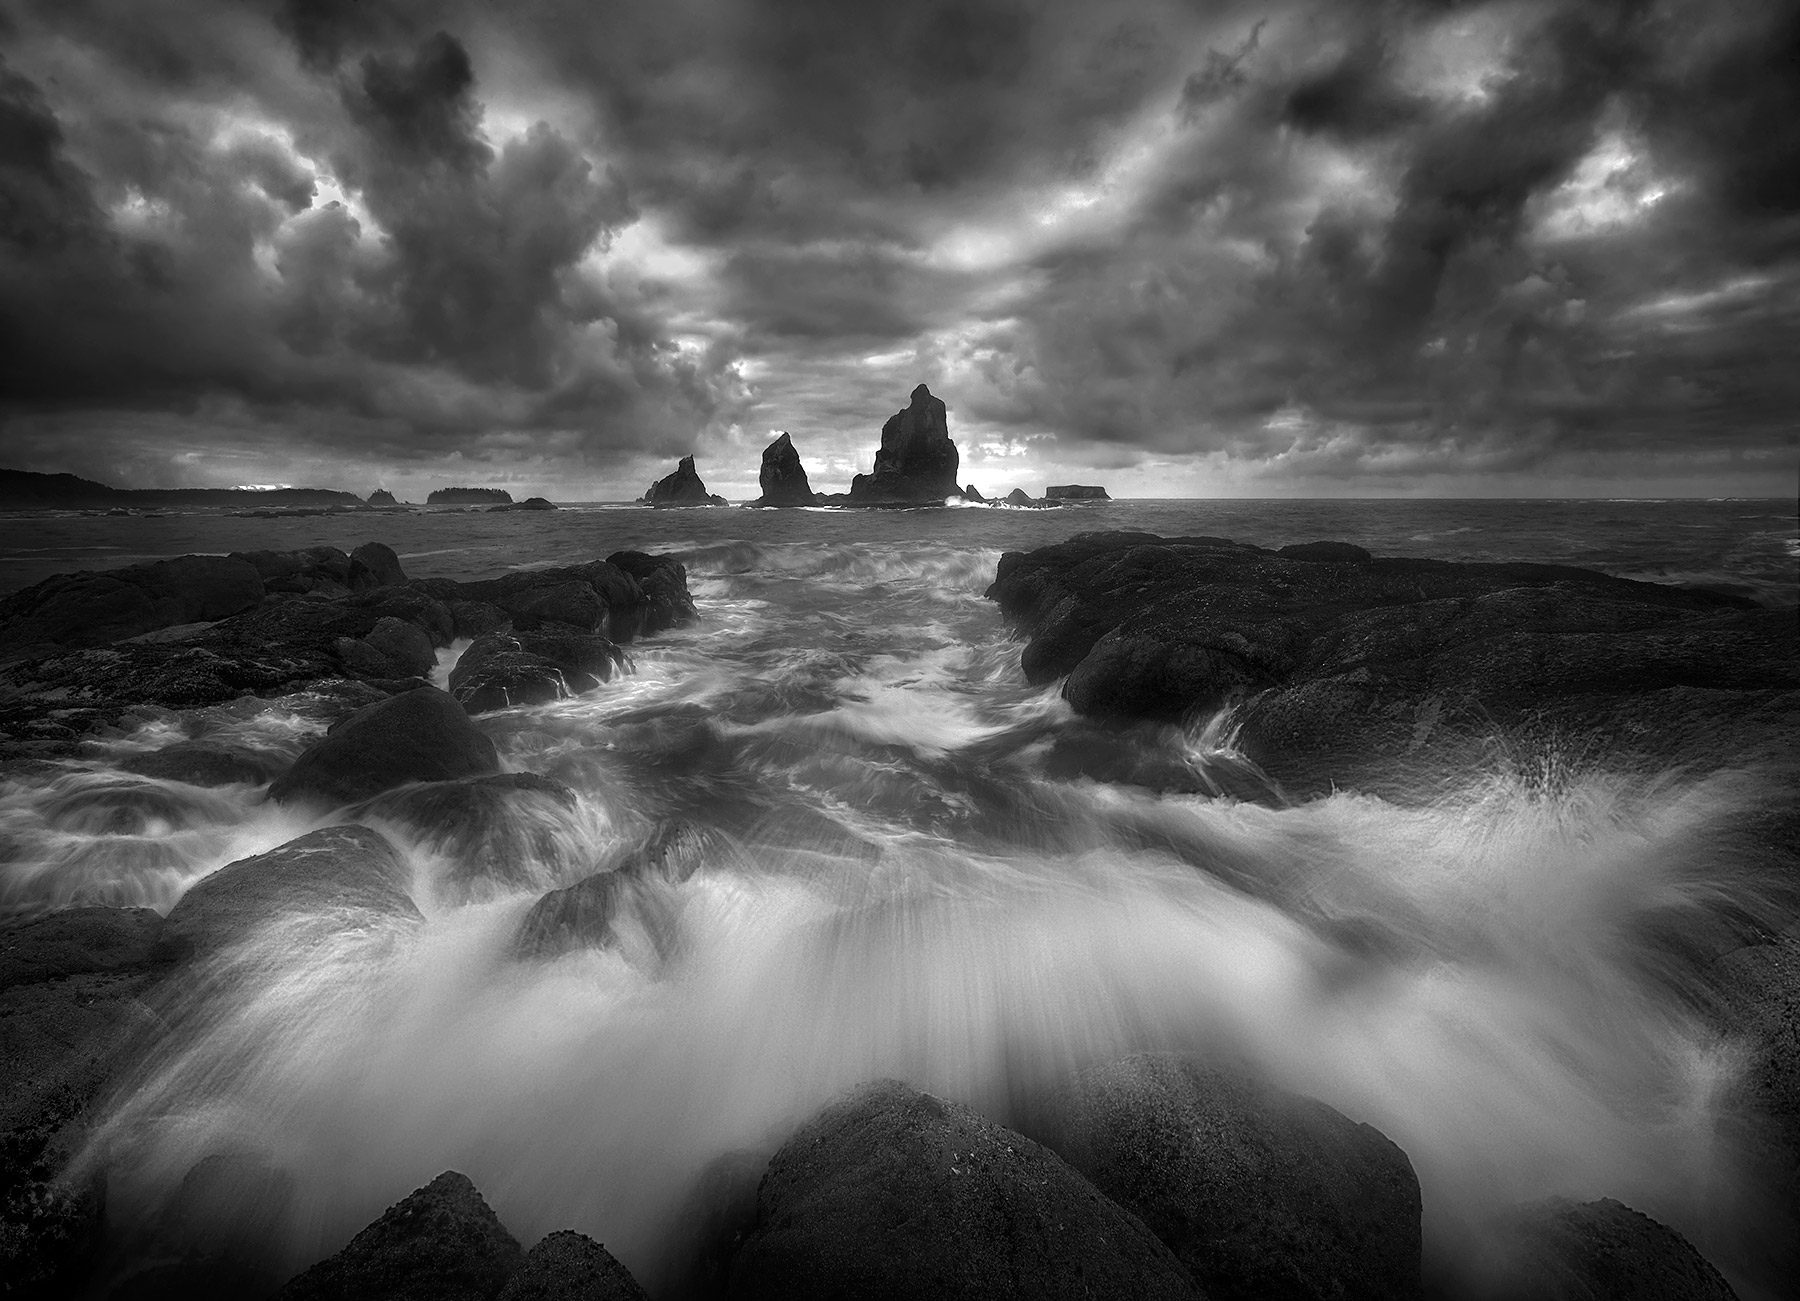 Island, Olympic, Coast, Washington, Stormy, Waves, photo